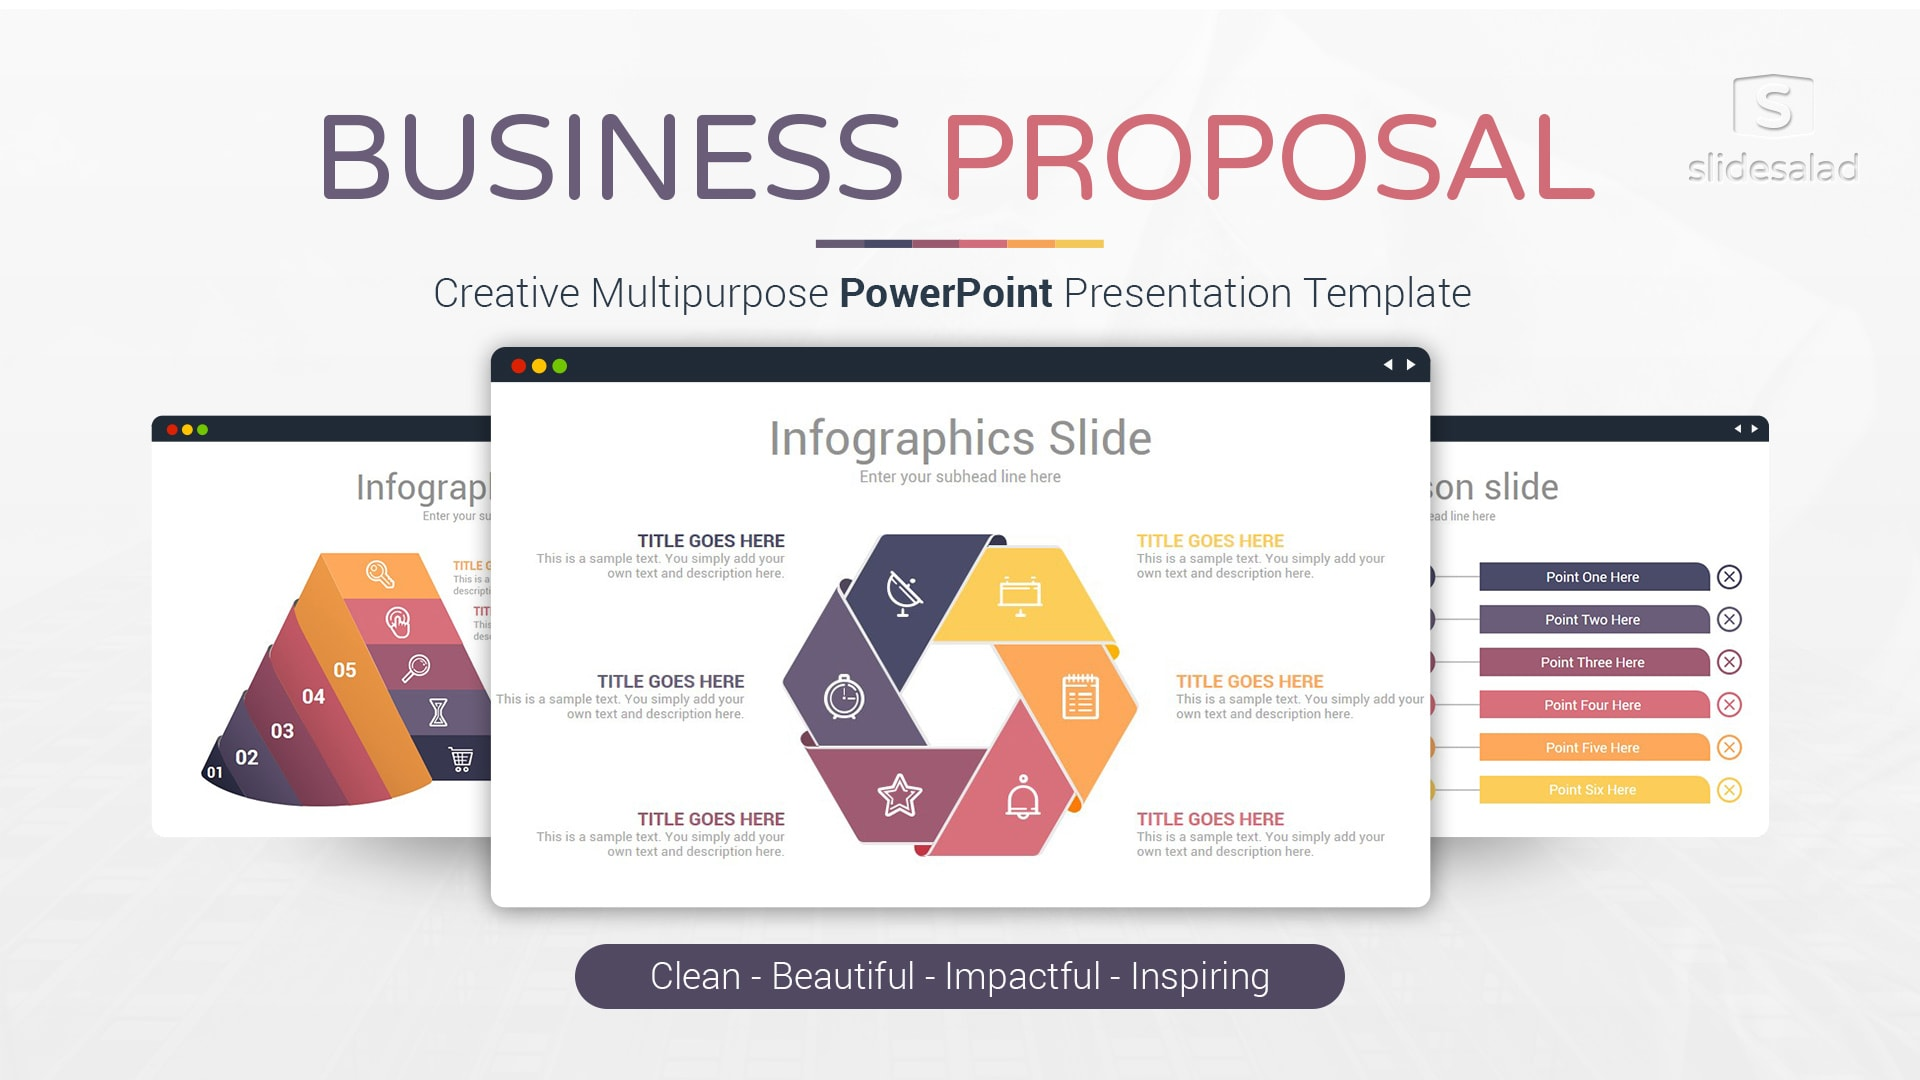 Business Proposal PowerPoint Presentation Template – Startup Pitch Deck Template PPT Presentation